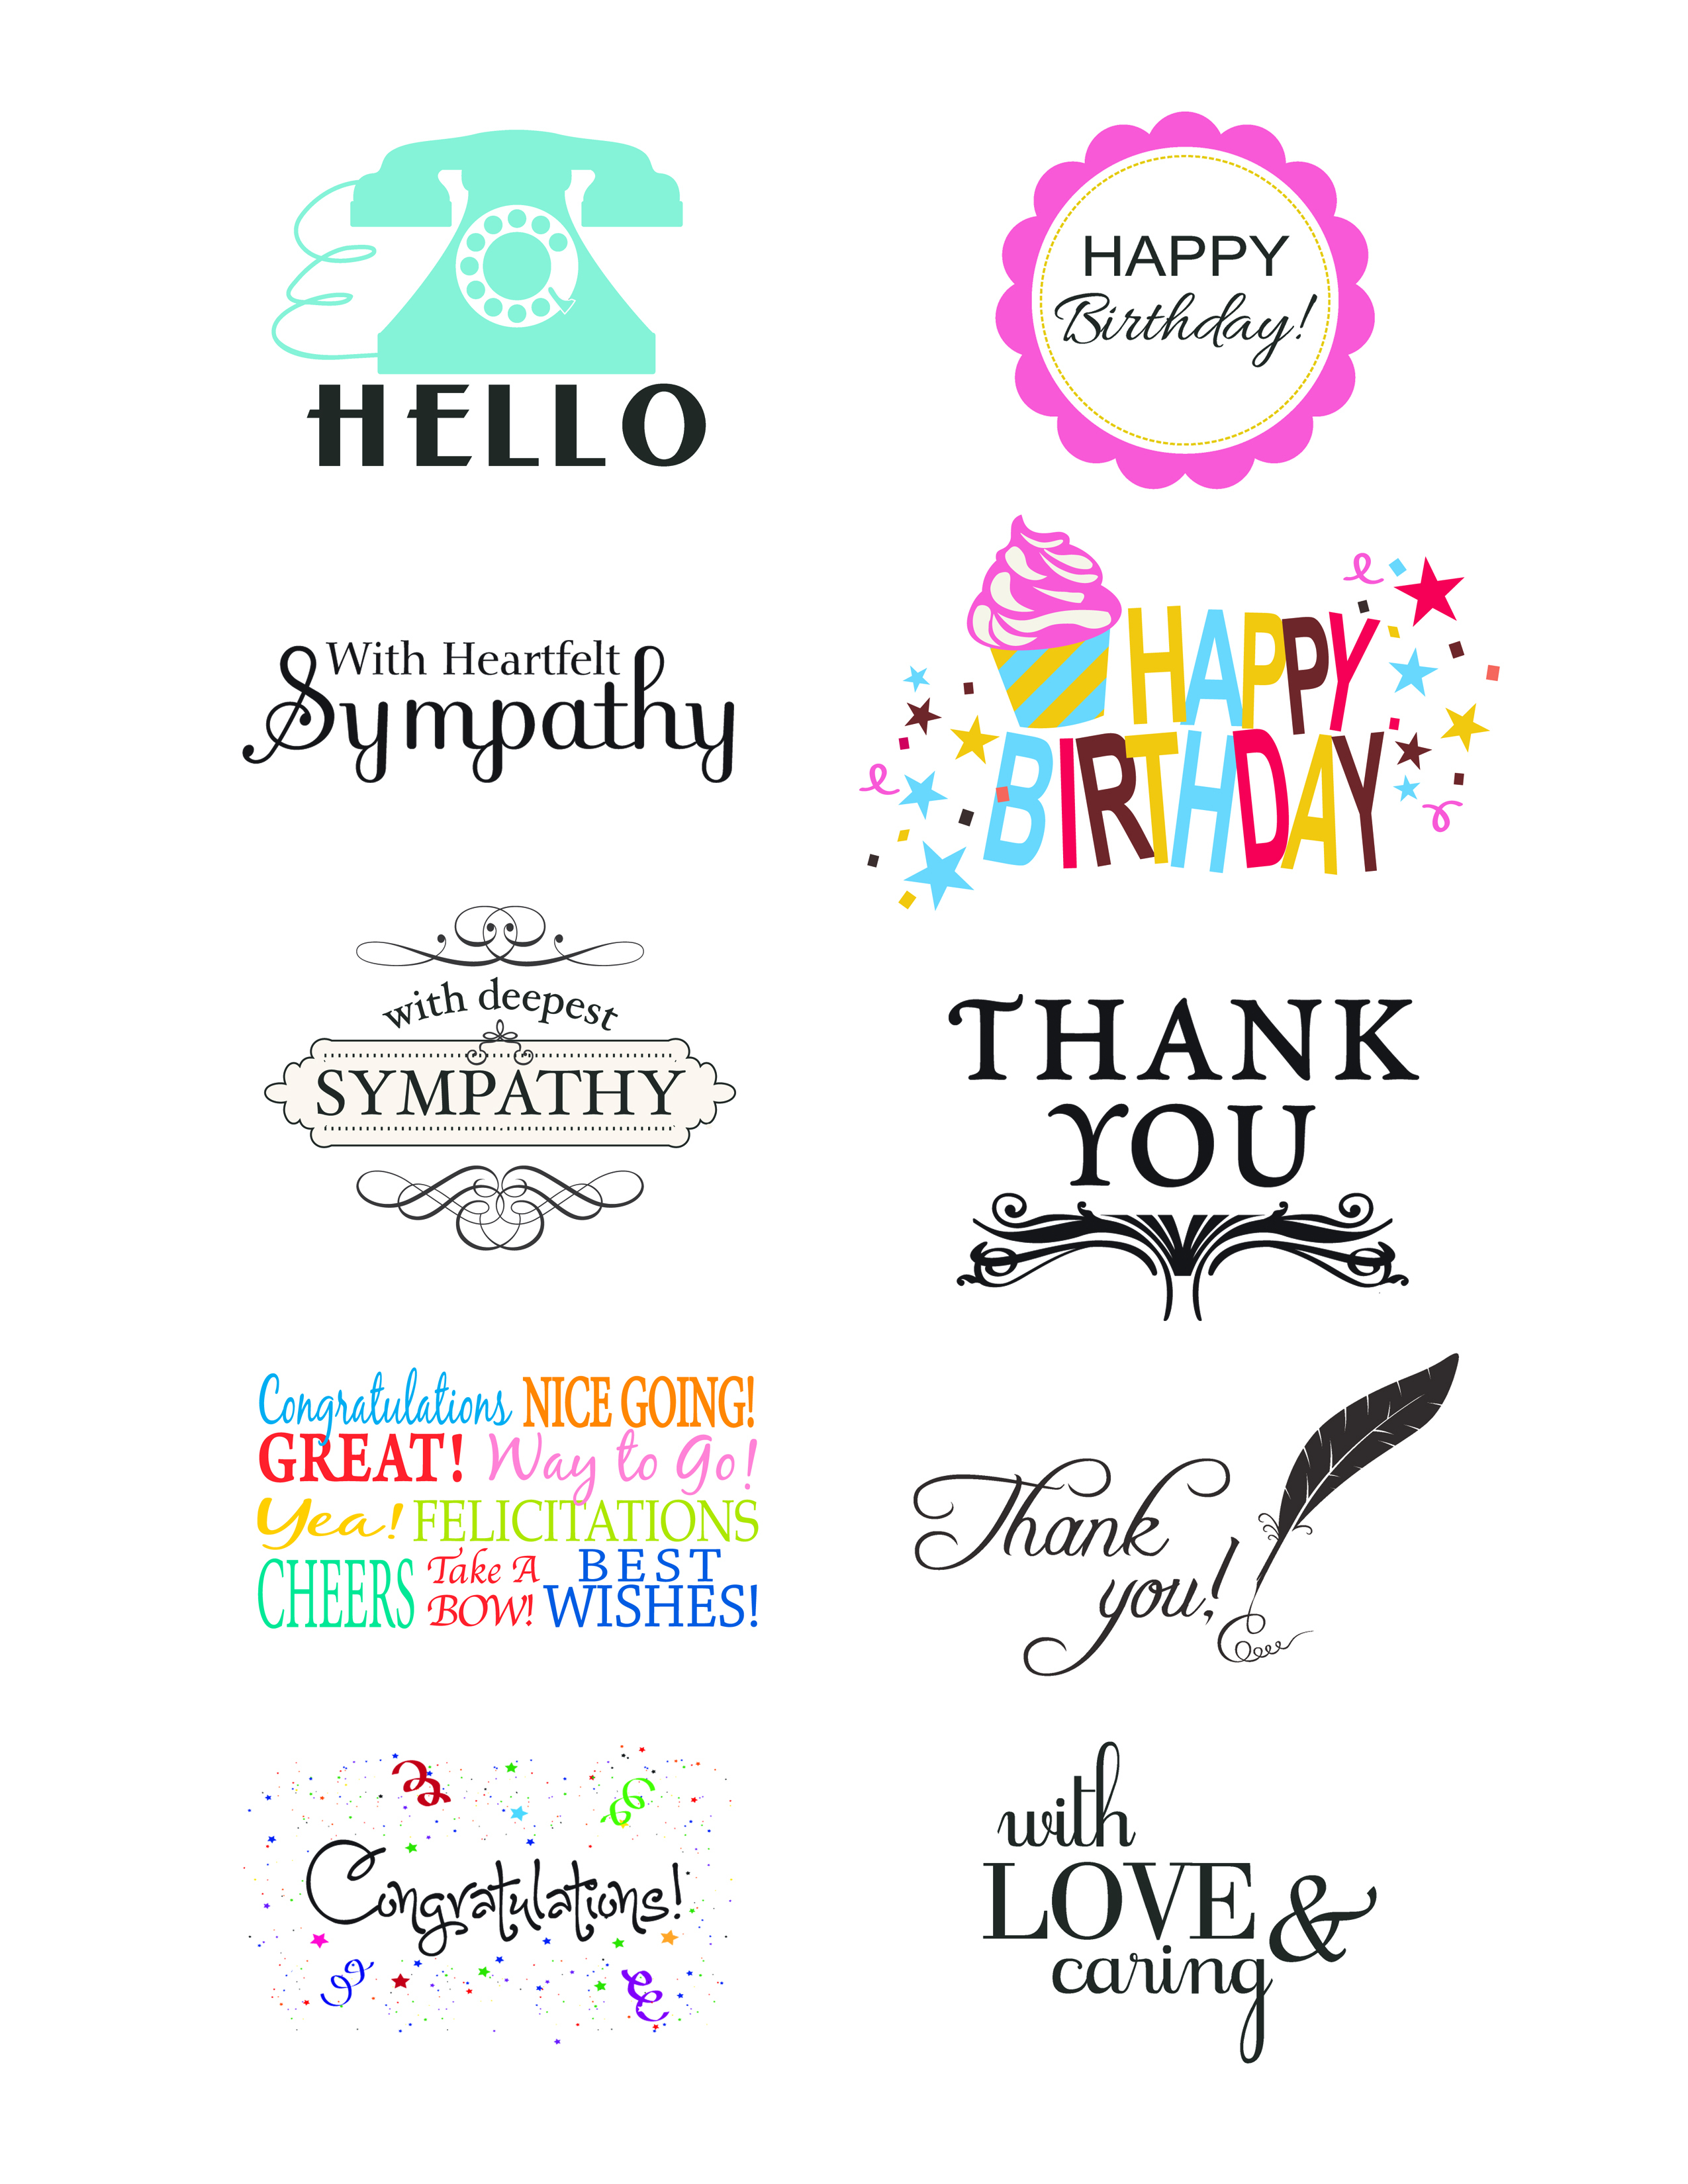 Printable Images For Card Making | Download Them Or Print - Free Card Creator Printable